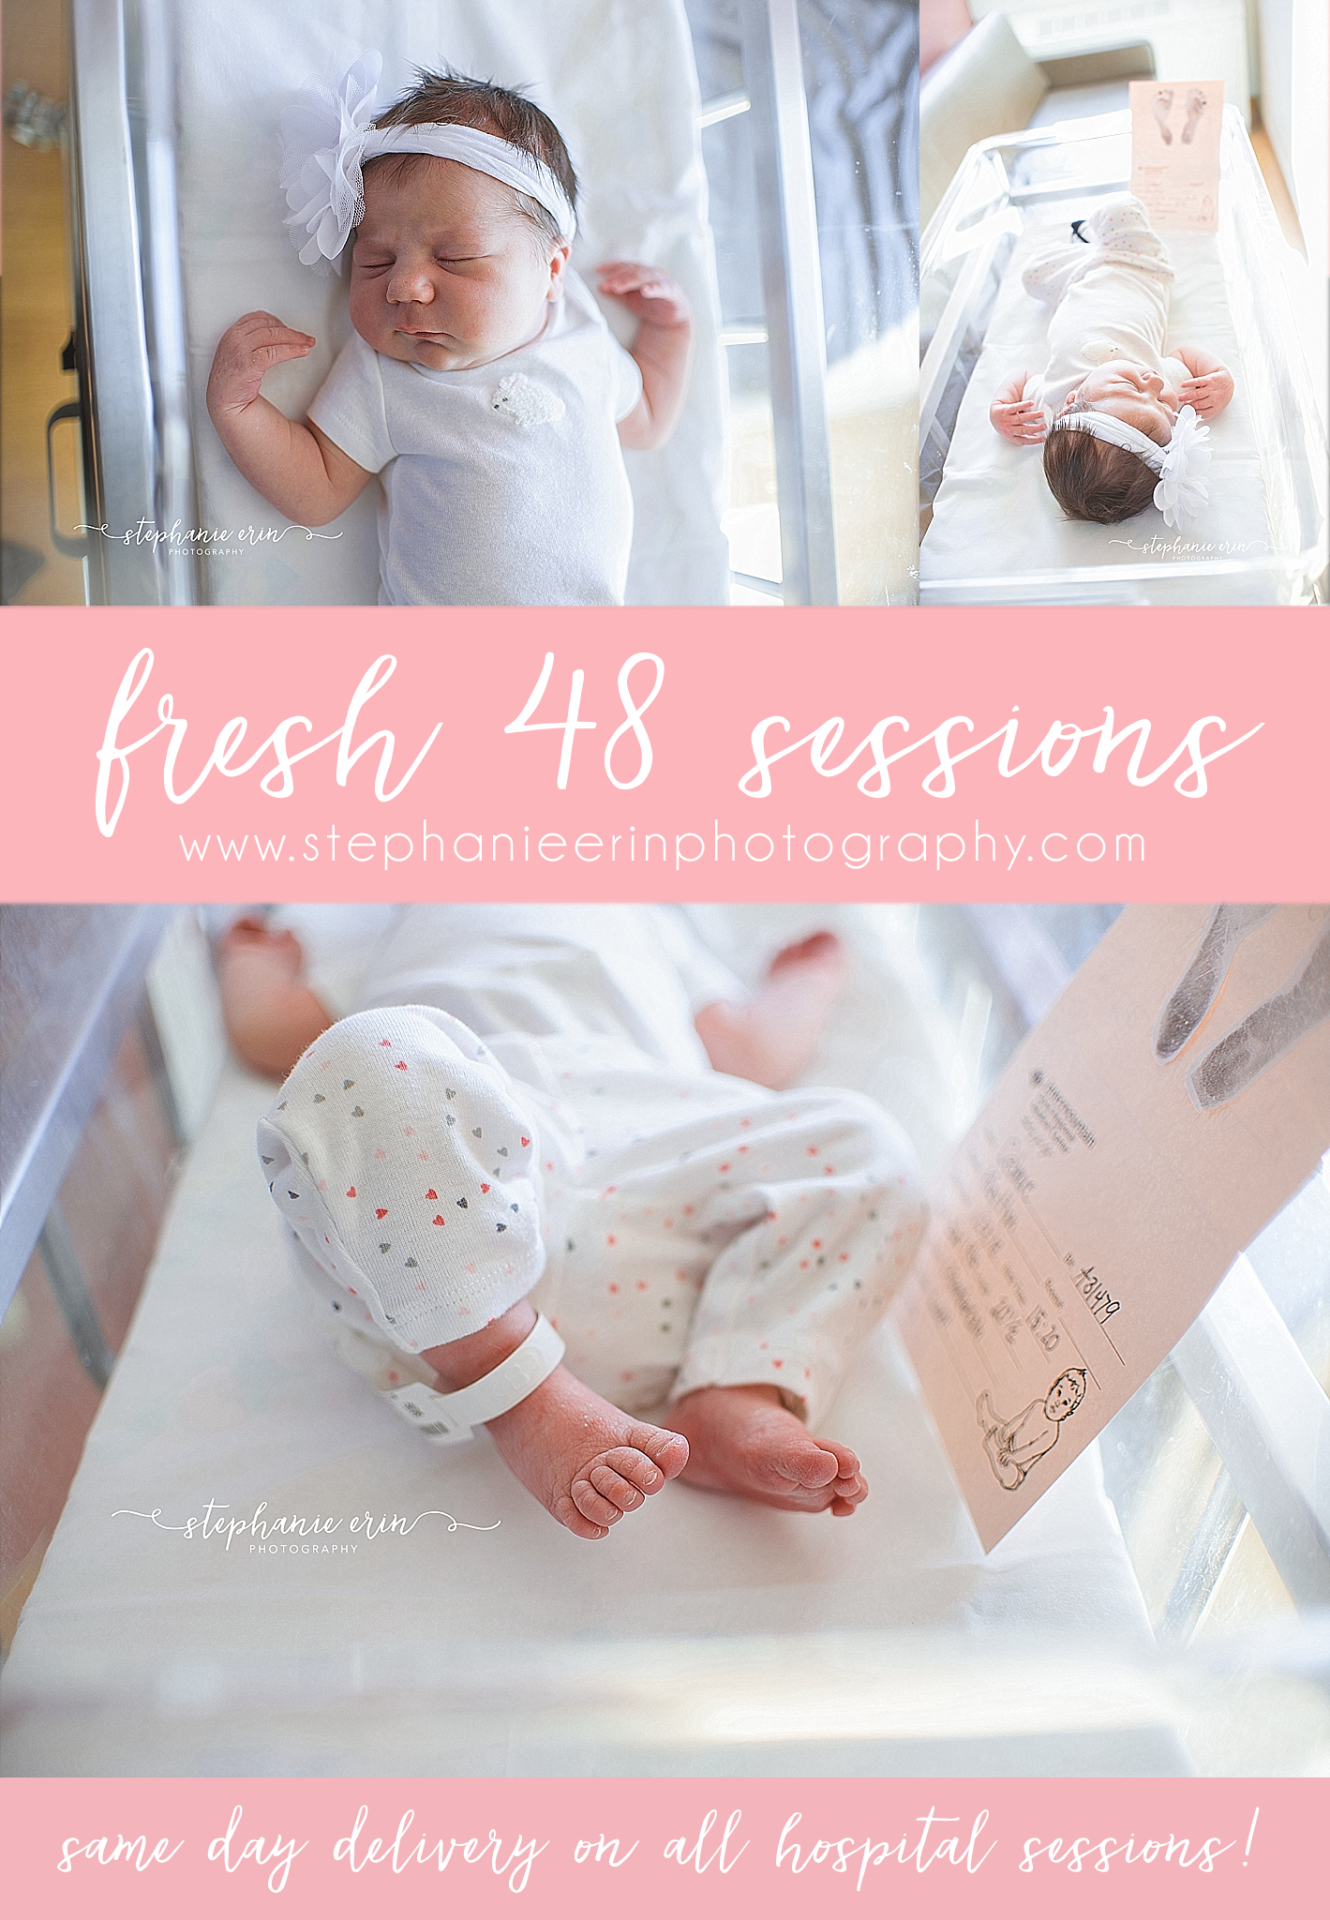 Delmue Fresh 48 Session | Stephanie Erin Photography | St George Utah Newborn Photographer